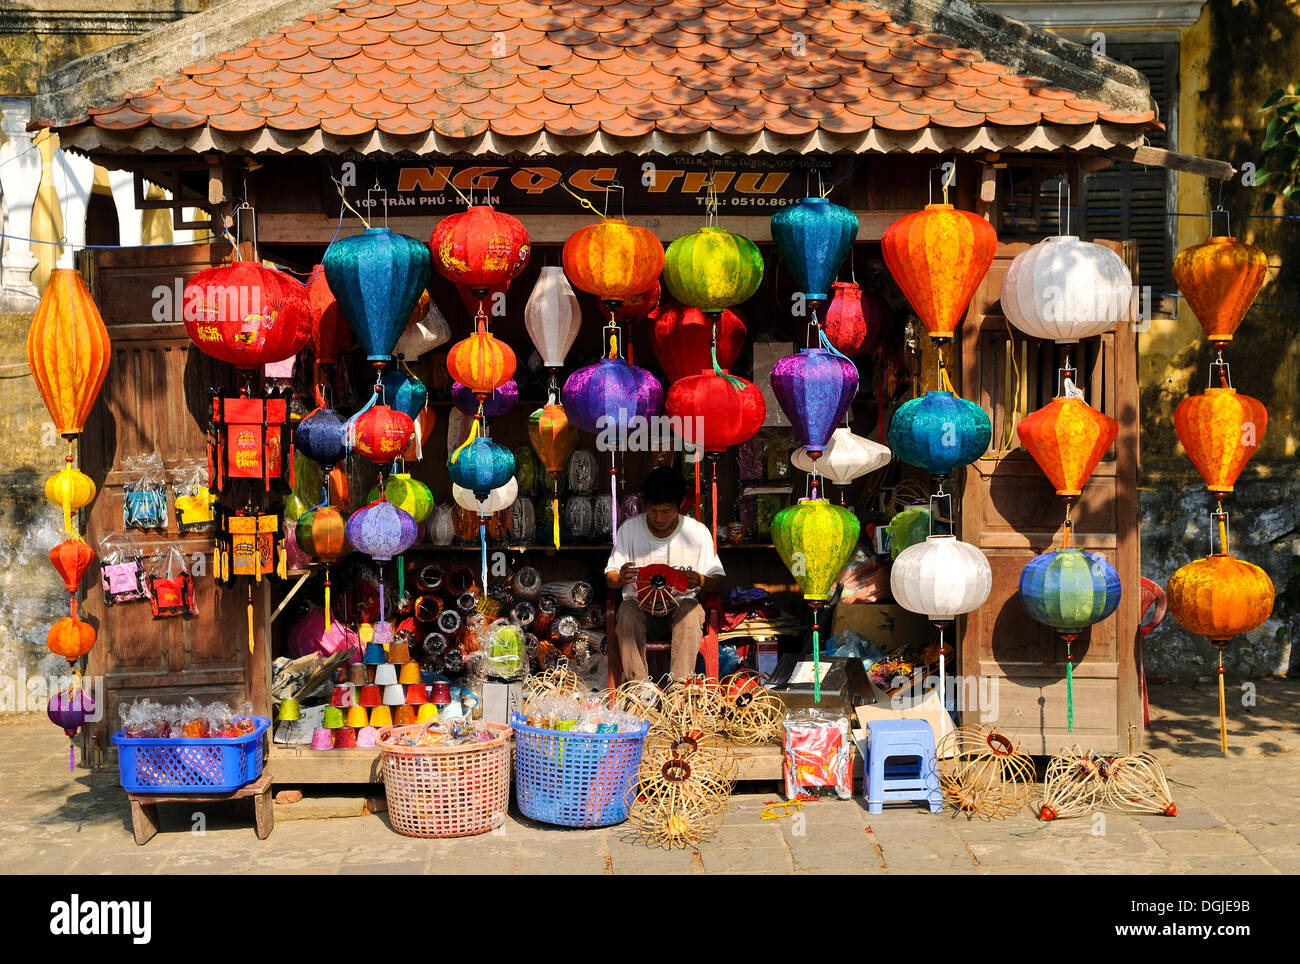 Typical shop with lanterns, Hoi An, Vietnam, Southeast Asia - Stock Image